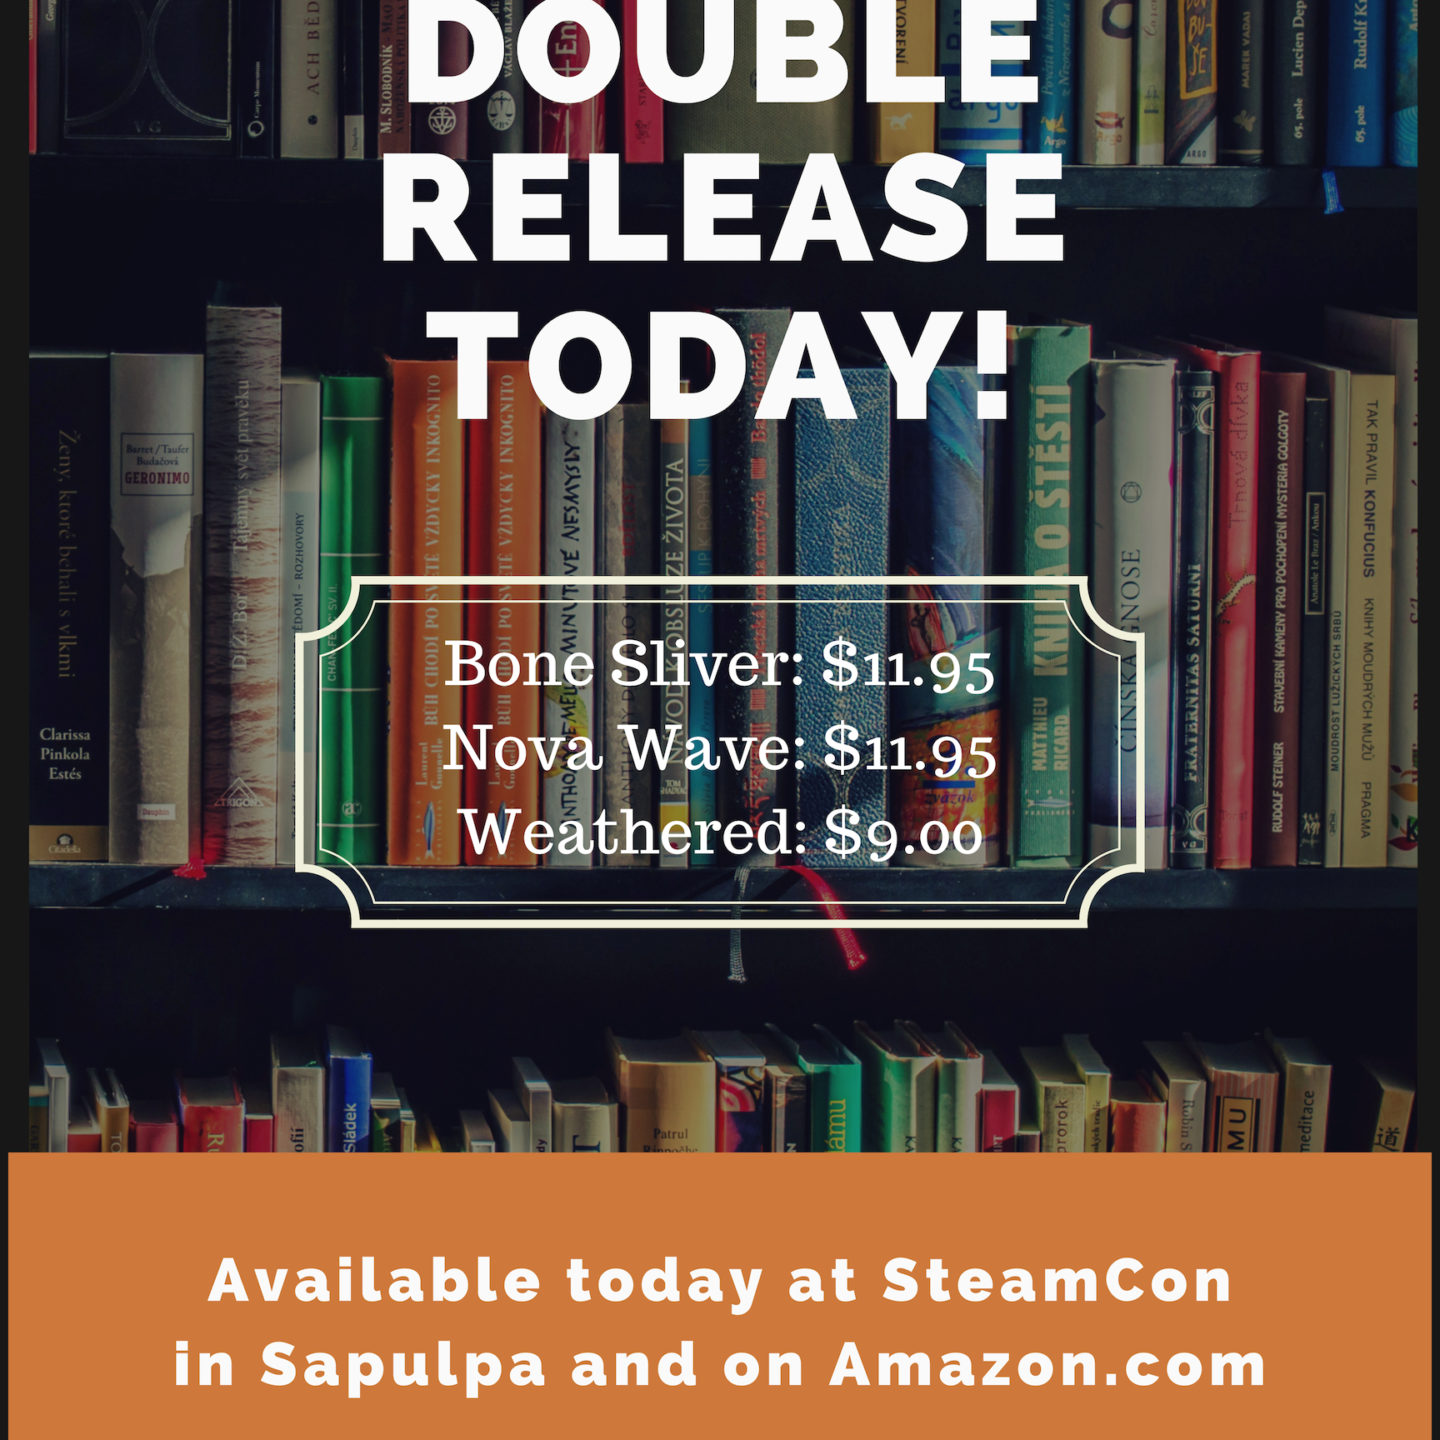 Steam Con Double Release!